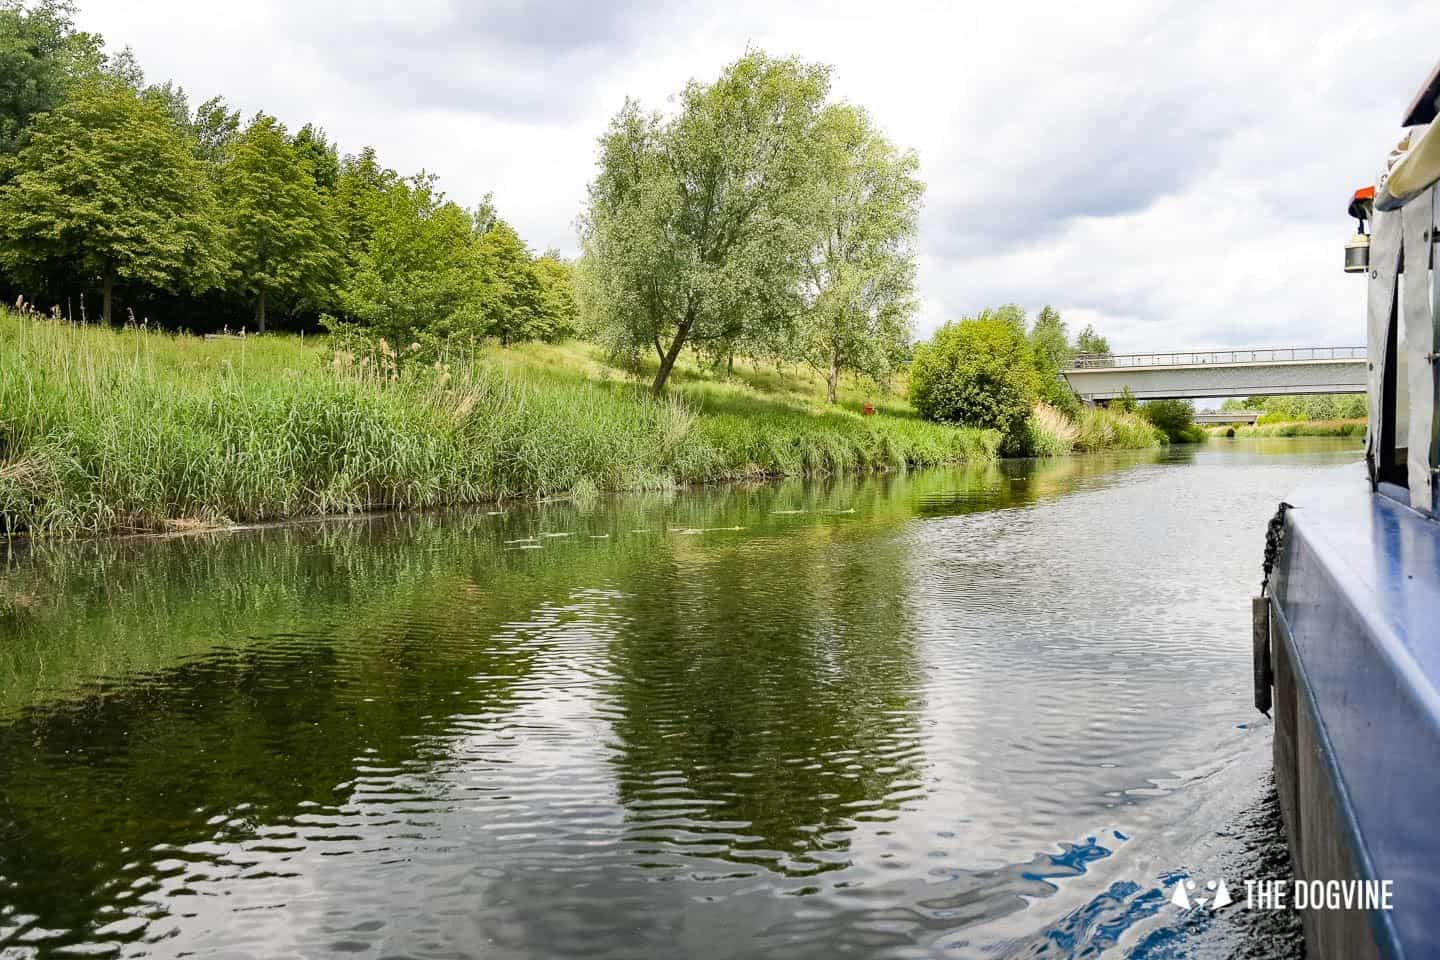 Queen Elizabeth Olympic Park Dog-friendly Boat Tours London - Lee and Stort 4